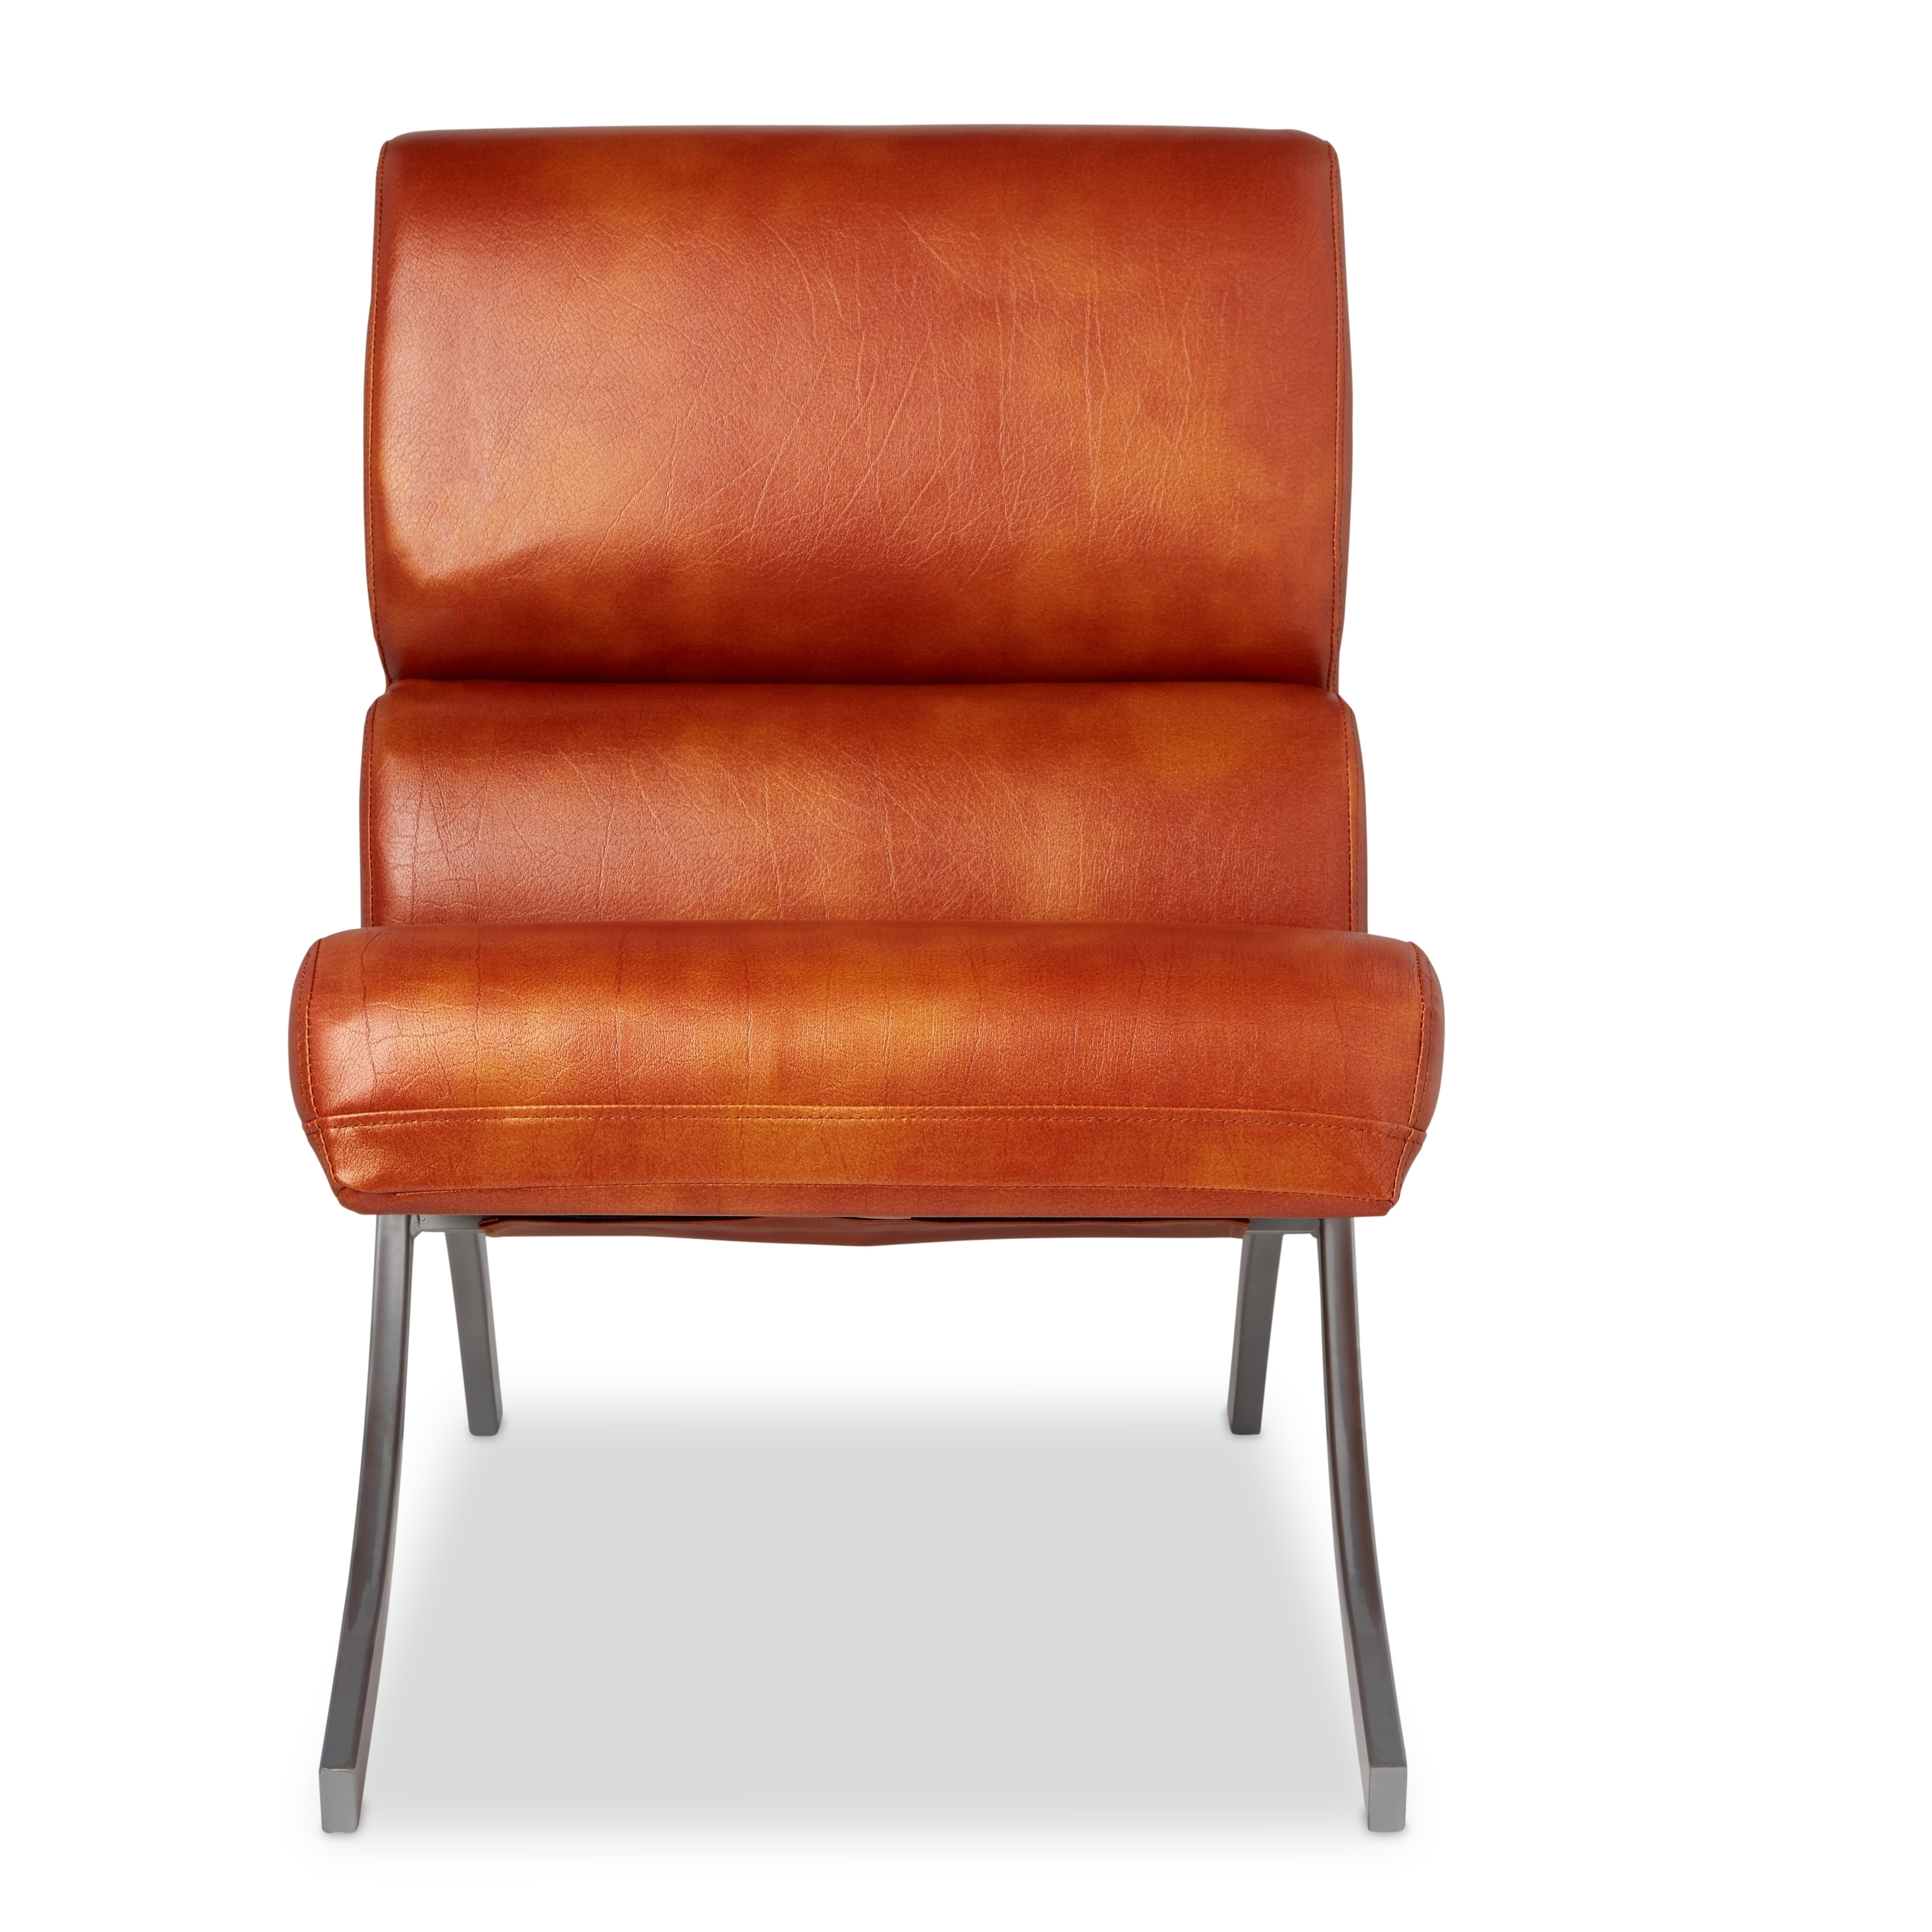 Shop Clay Alder Home Rialto Rust Faux Leather Chair - Free Shipping Today - Overstock.com - 6527279  sc 1 st  Overstock.com & Shop Clay Alder Home Rialto Rust Faux Leather Chair - Free Shipping ...